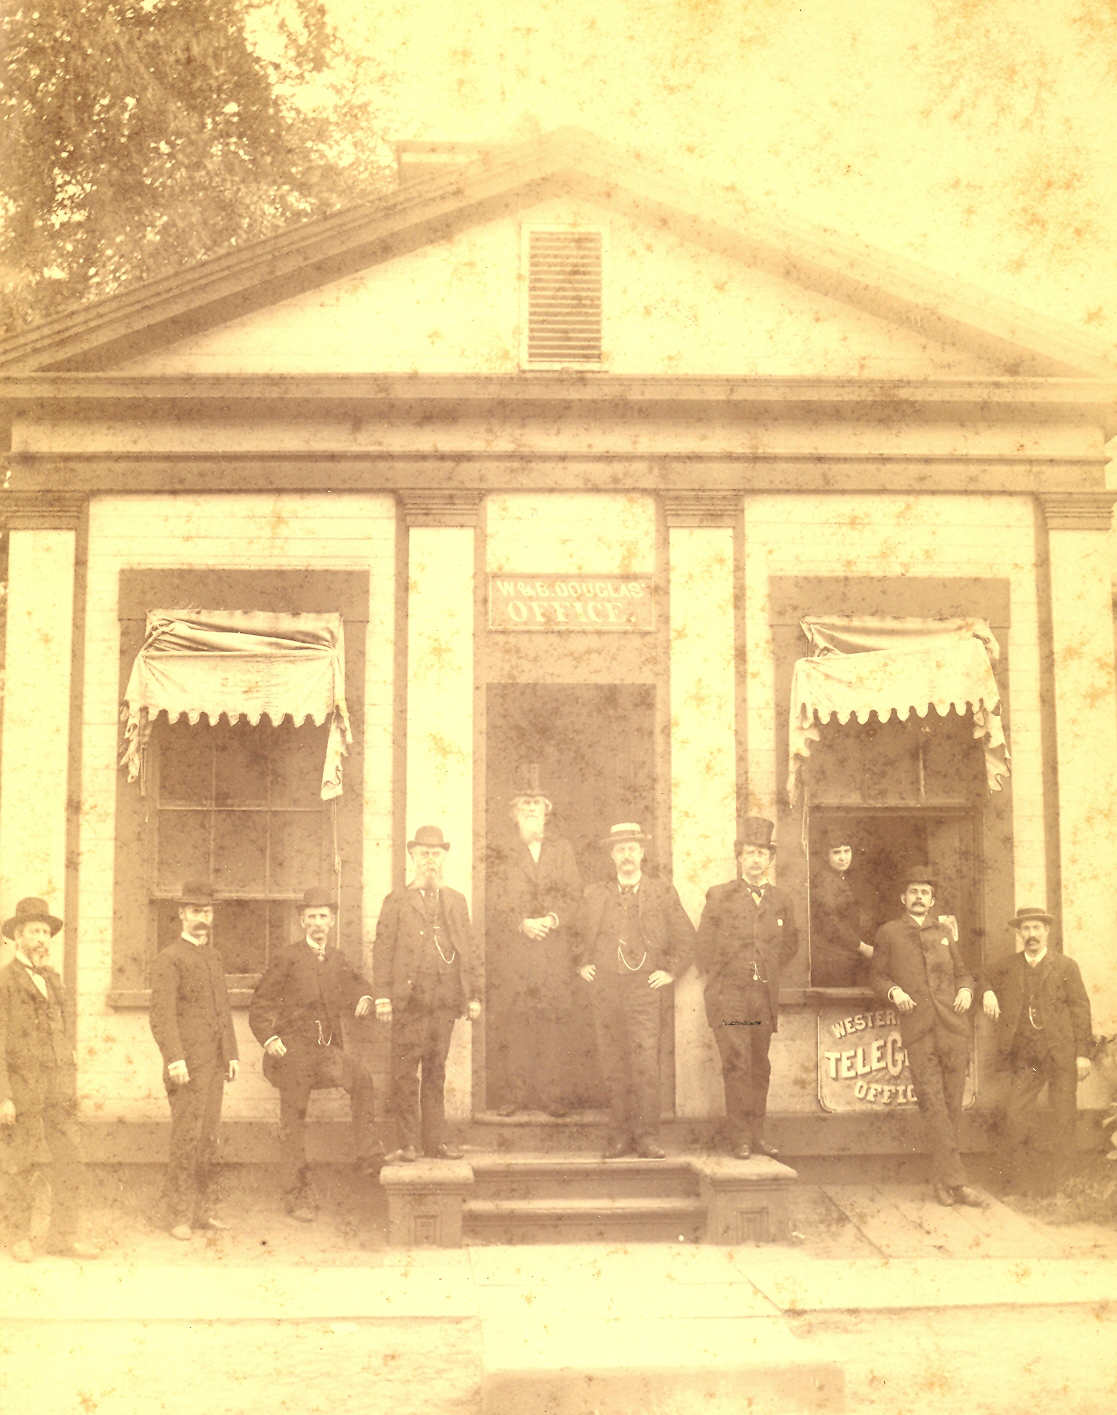 Douglas Pump Company with Ben Douglas Sr. and Ben Douglas Jr. (5th from right), 1868.